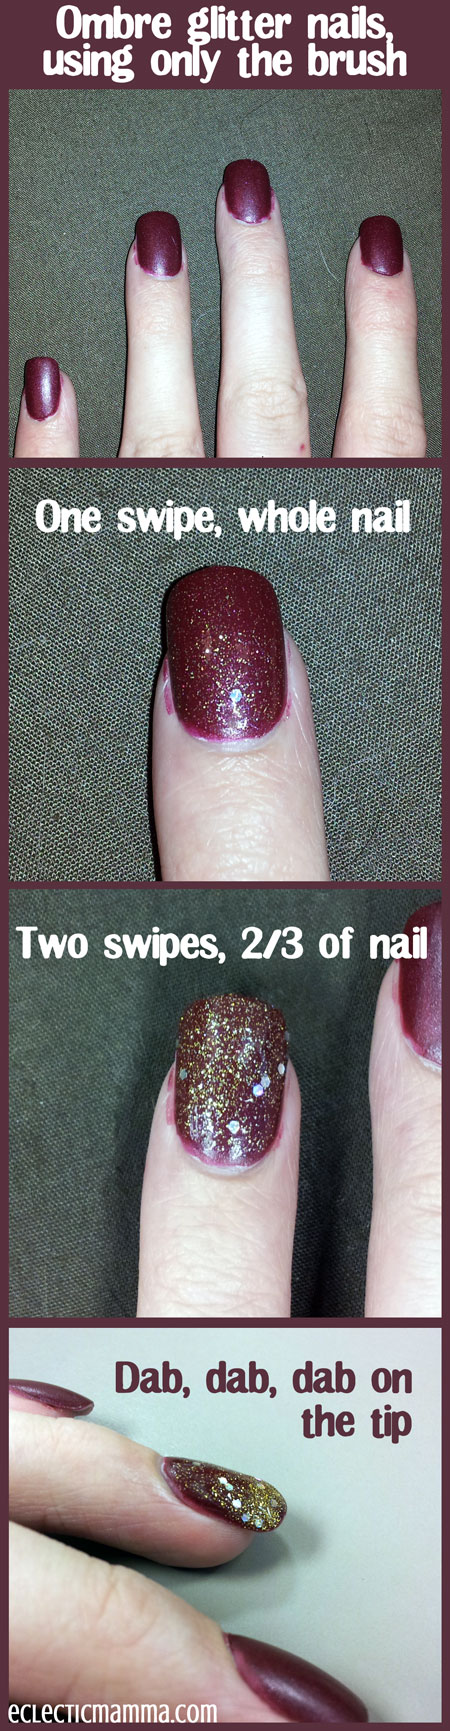 Ombre glittered nail directions